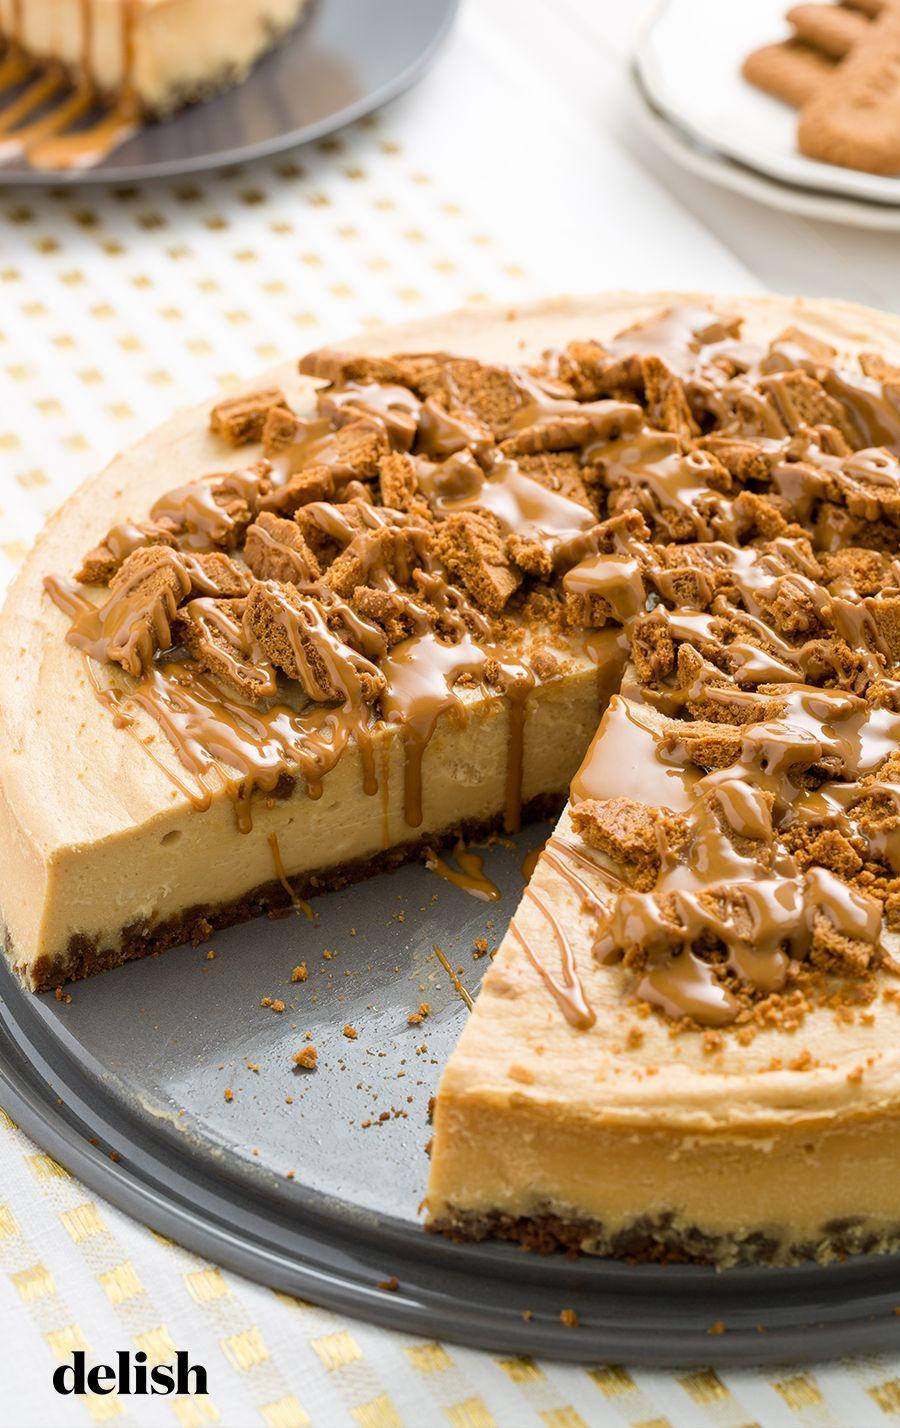 """<p>Speculoos fans will flip over this cheesecake.</p><p>Get the recipe from <a href=""""https://www.delish.com/cooking/recipe-ideas/recipes/a45318/cookie-butter-cheesecake/"""" rel=""""nofollow noopener"""" target=""""_blank"""" data-ylk=""""slk:Delish"""" class=""""link rapid-noclick-resp"""">Delish</a>.</p>"""